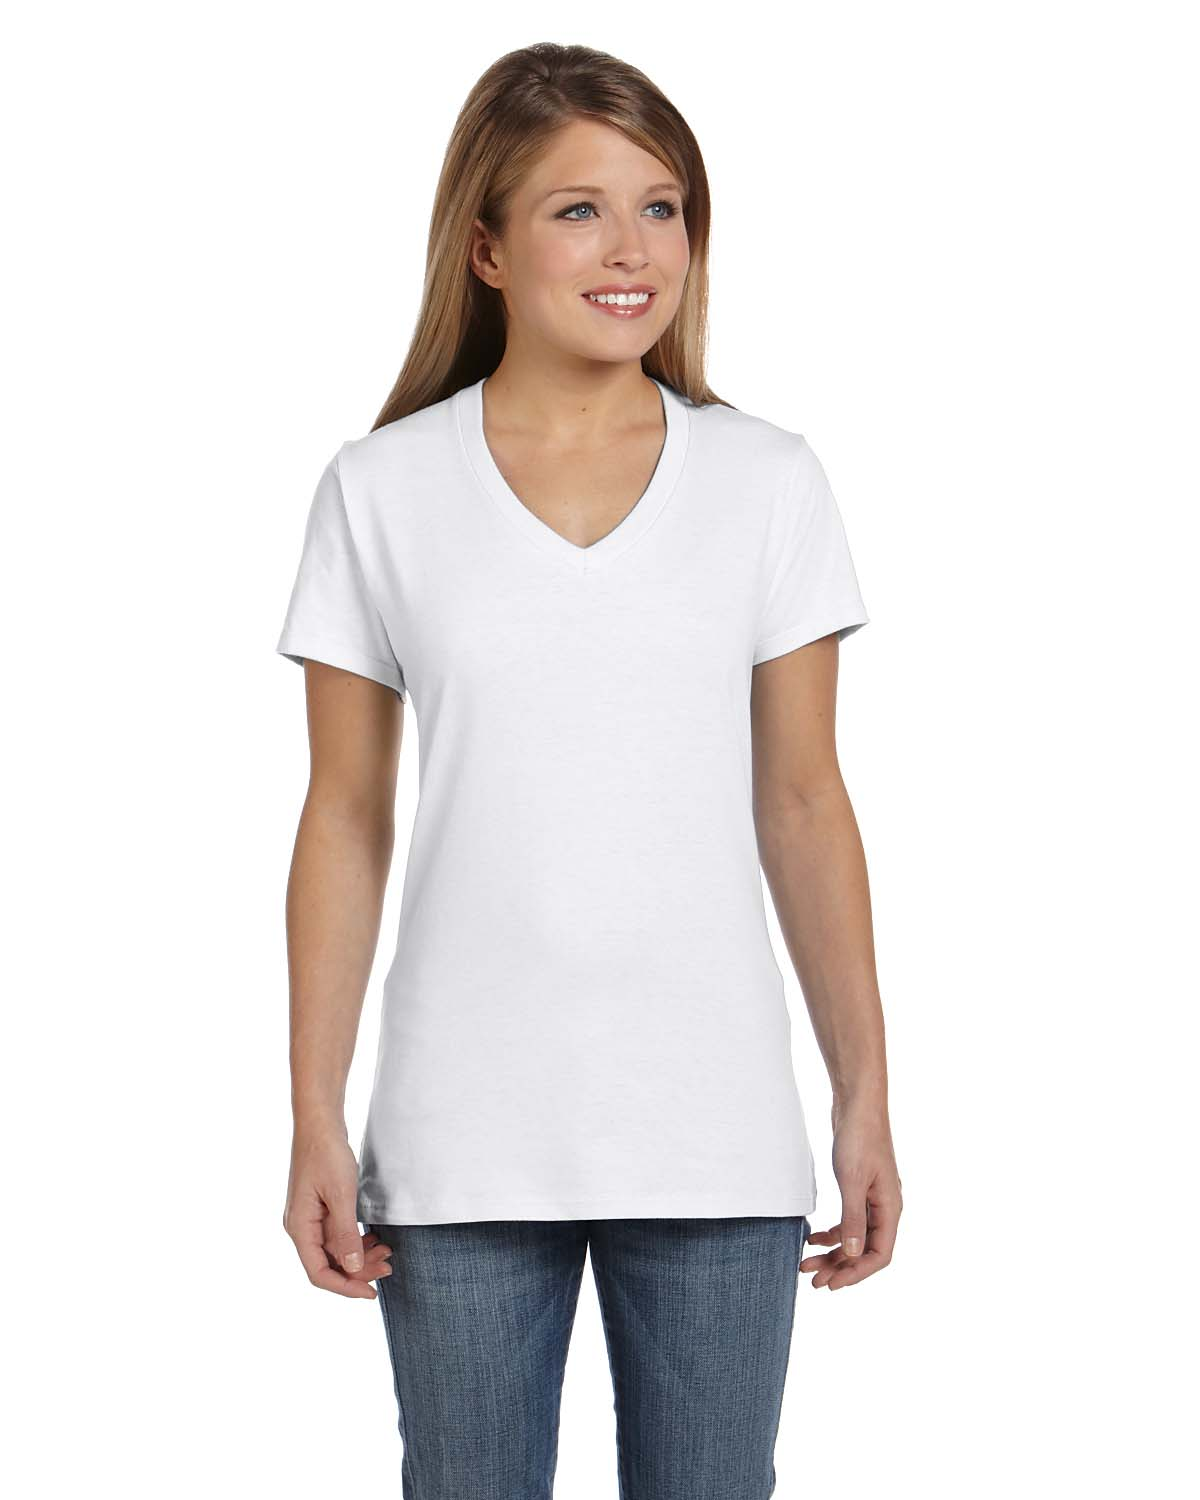 She'll love Arctic Cool's revolutionary Instant Cooling V-Neck Youth Girl's T-Shirt for so many reasons. First, it's designed to wick moisture away from the skin and disperse it throughout the shirt, keeping her dry and comfortable.